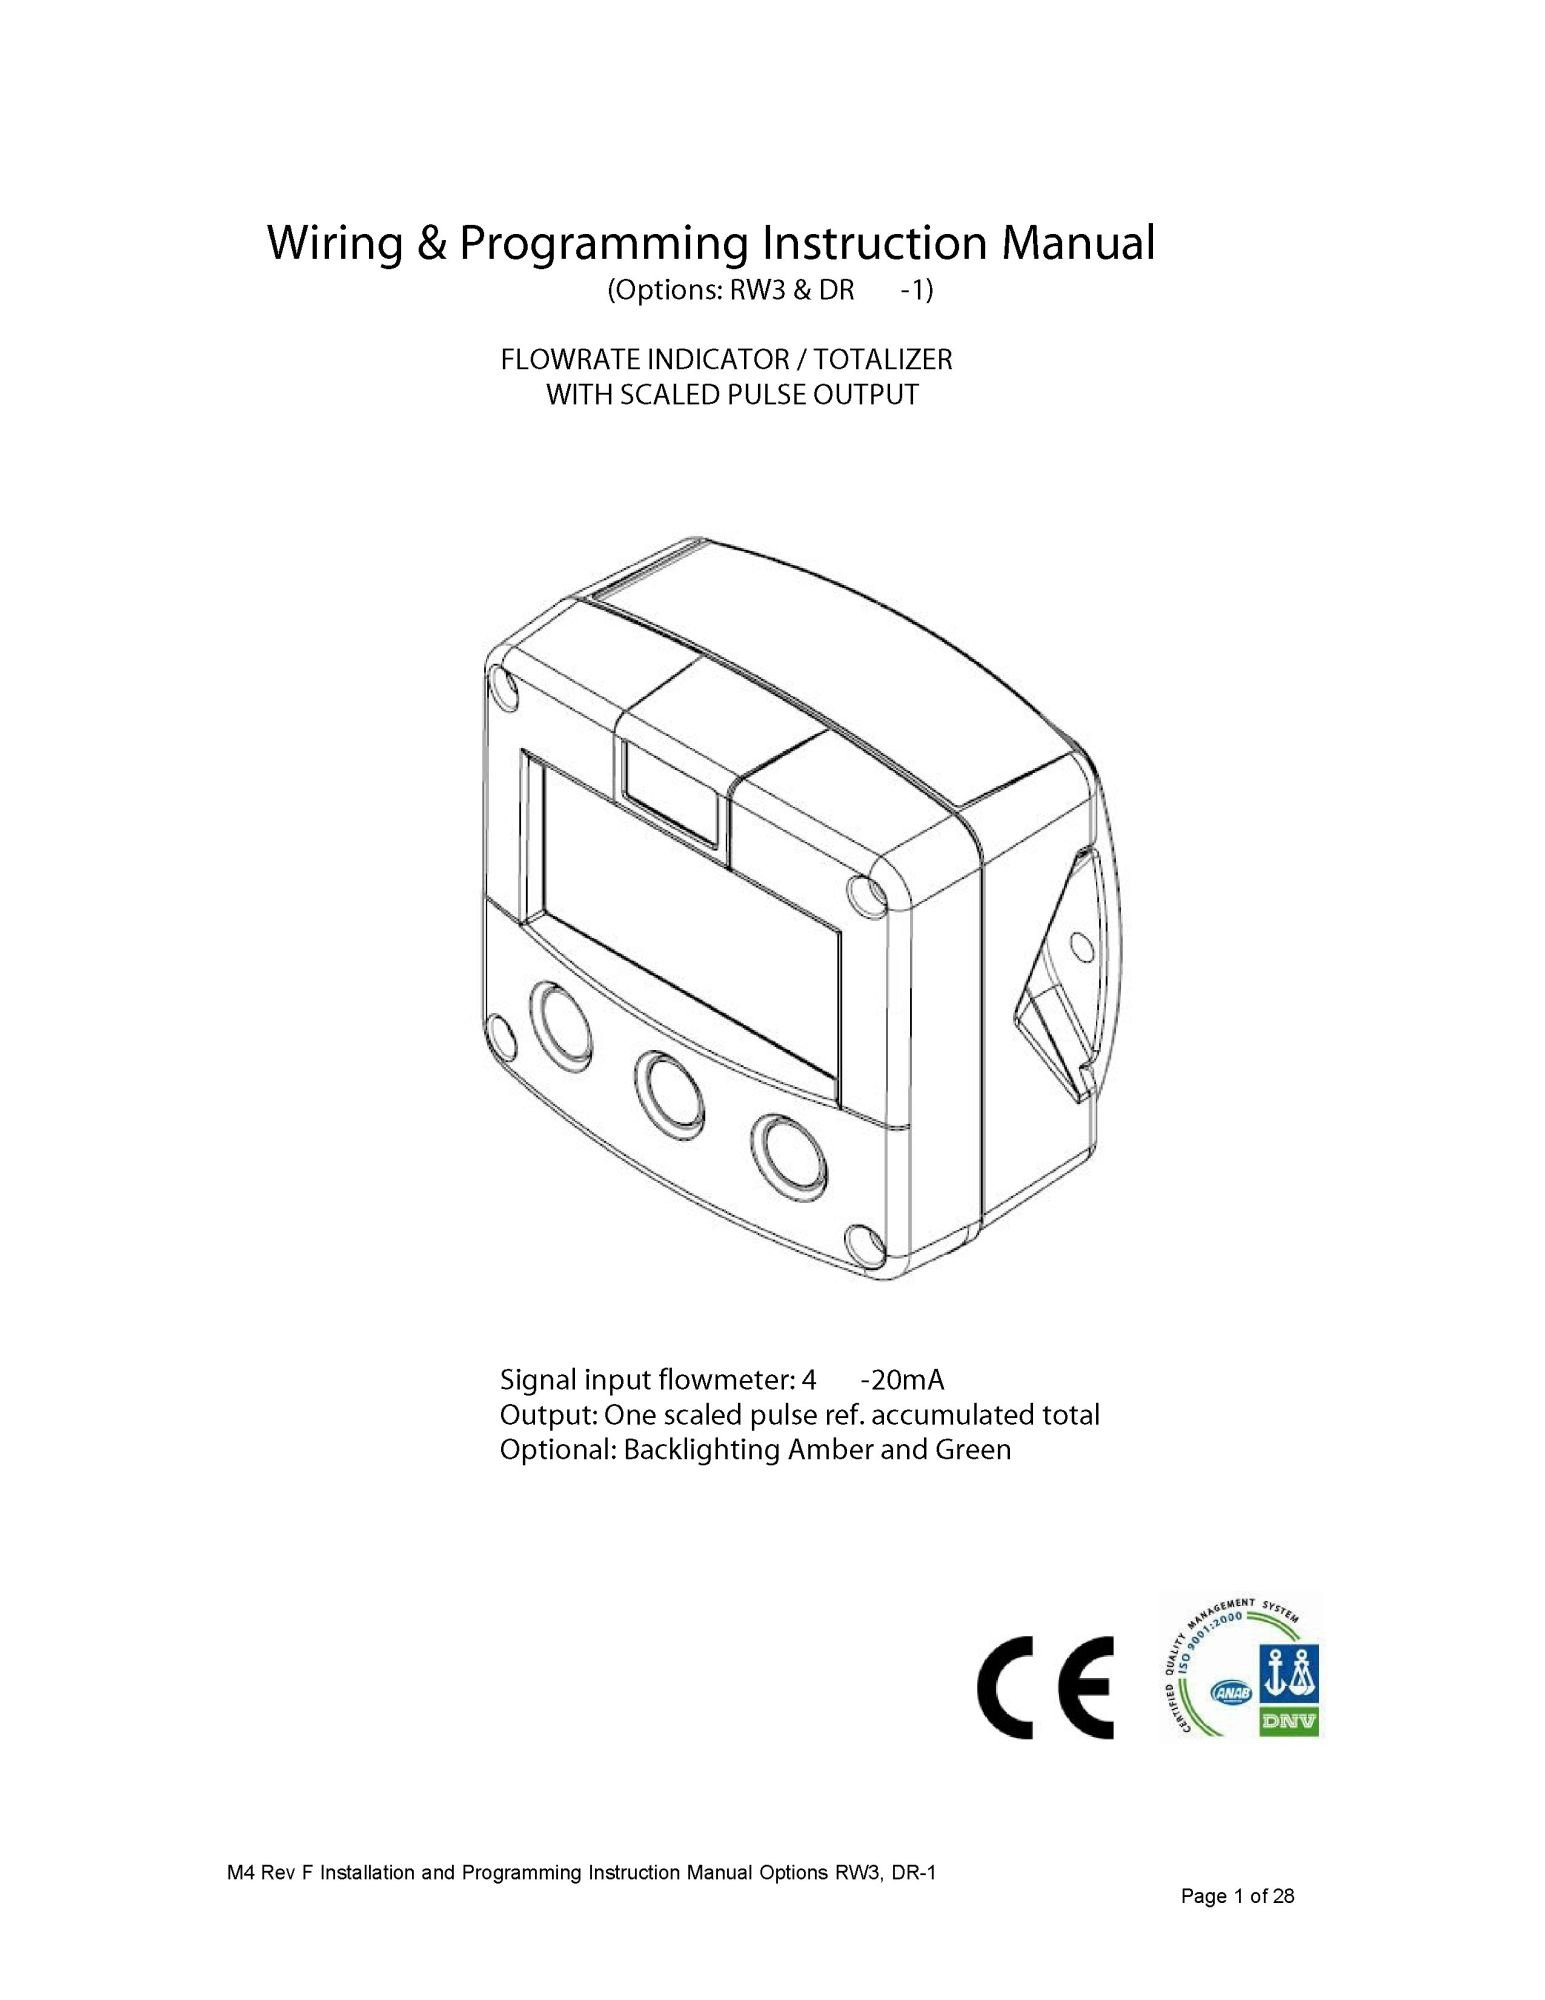 Digital Display Modbus Instruction Manual